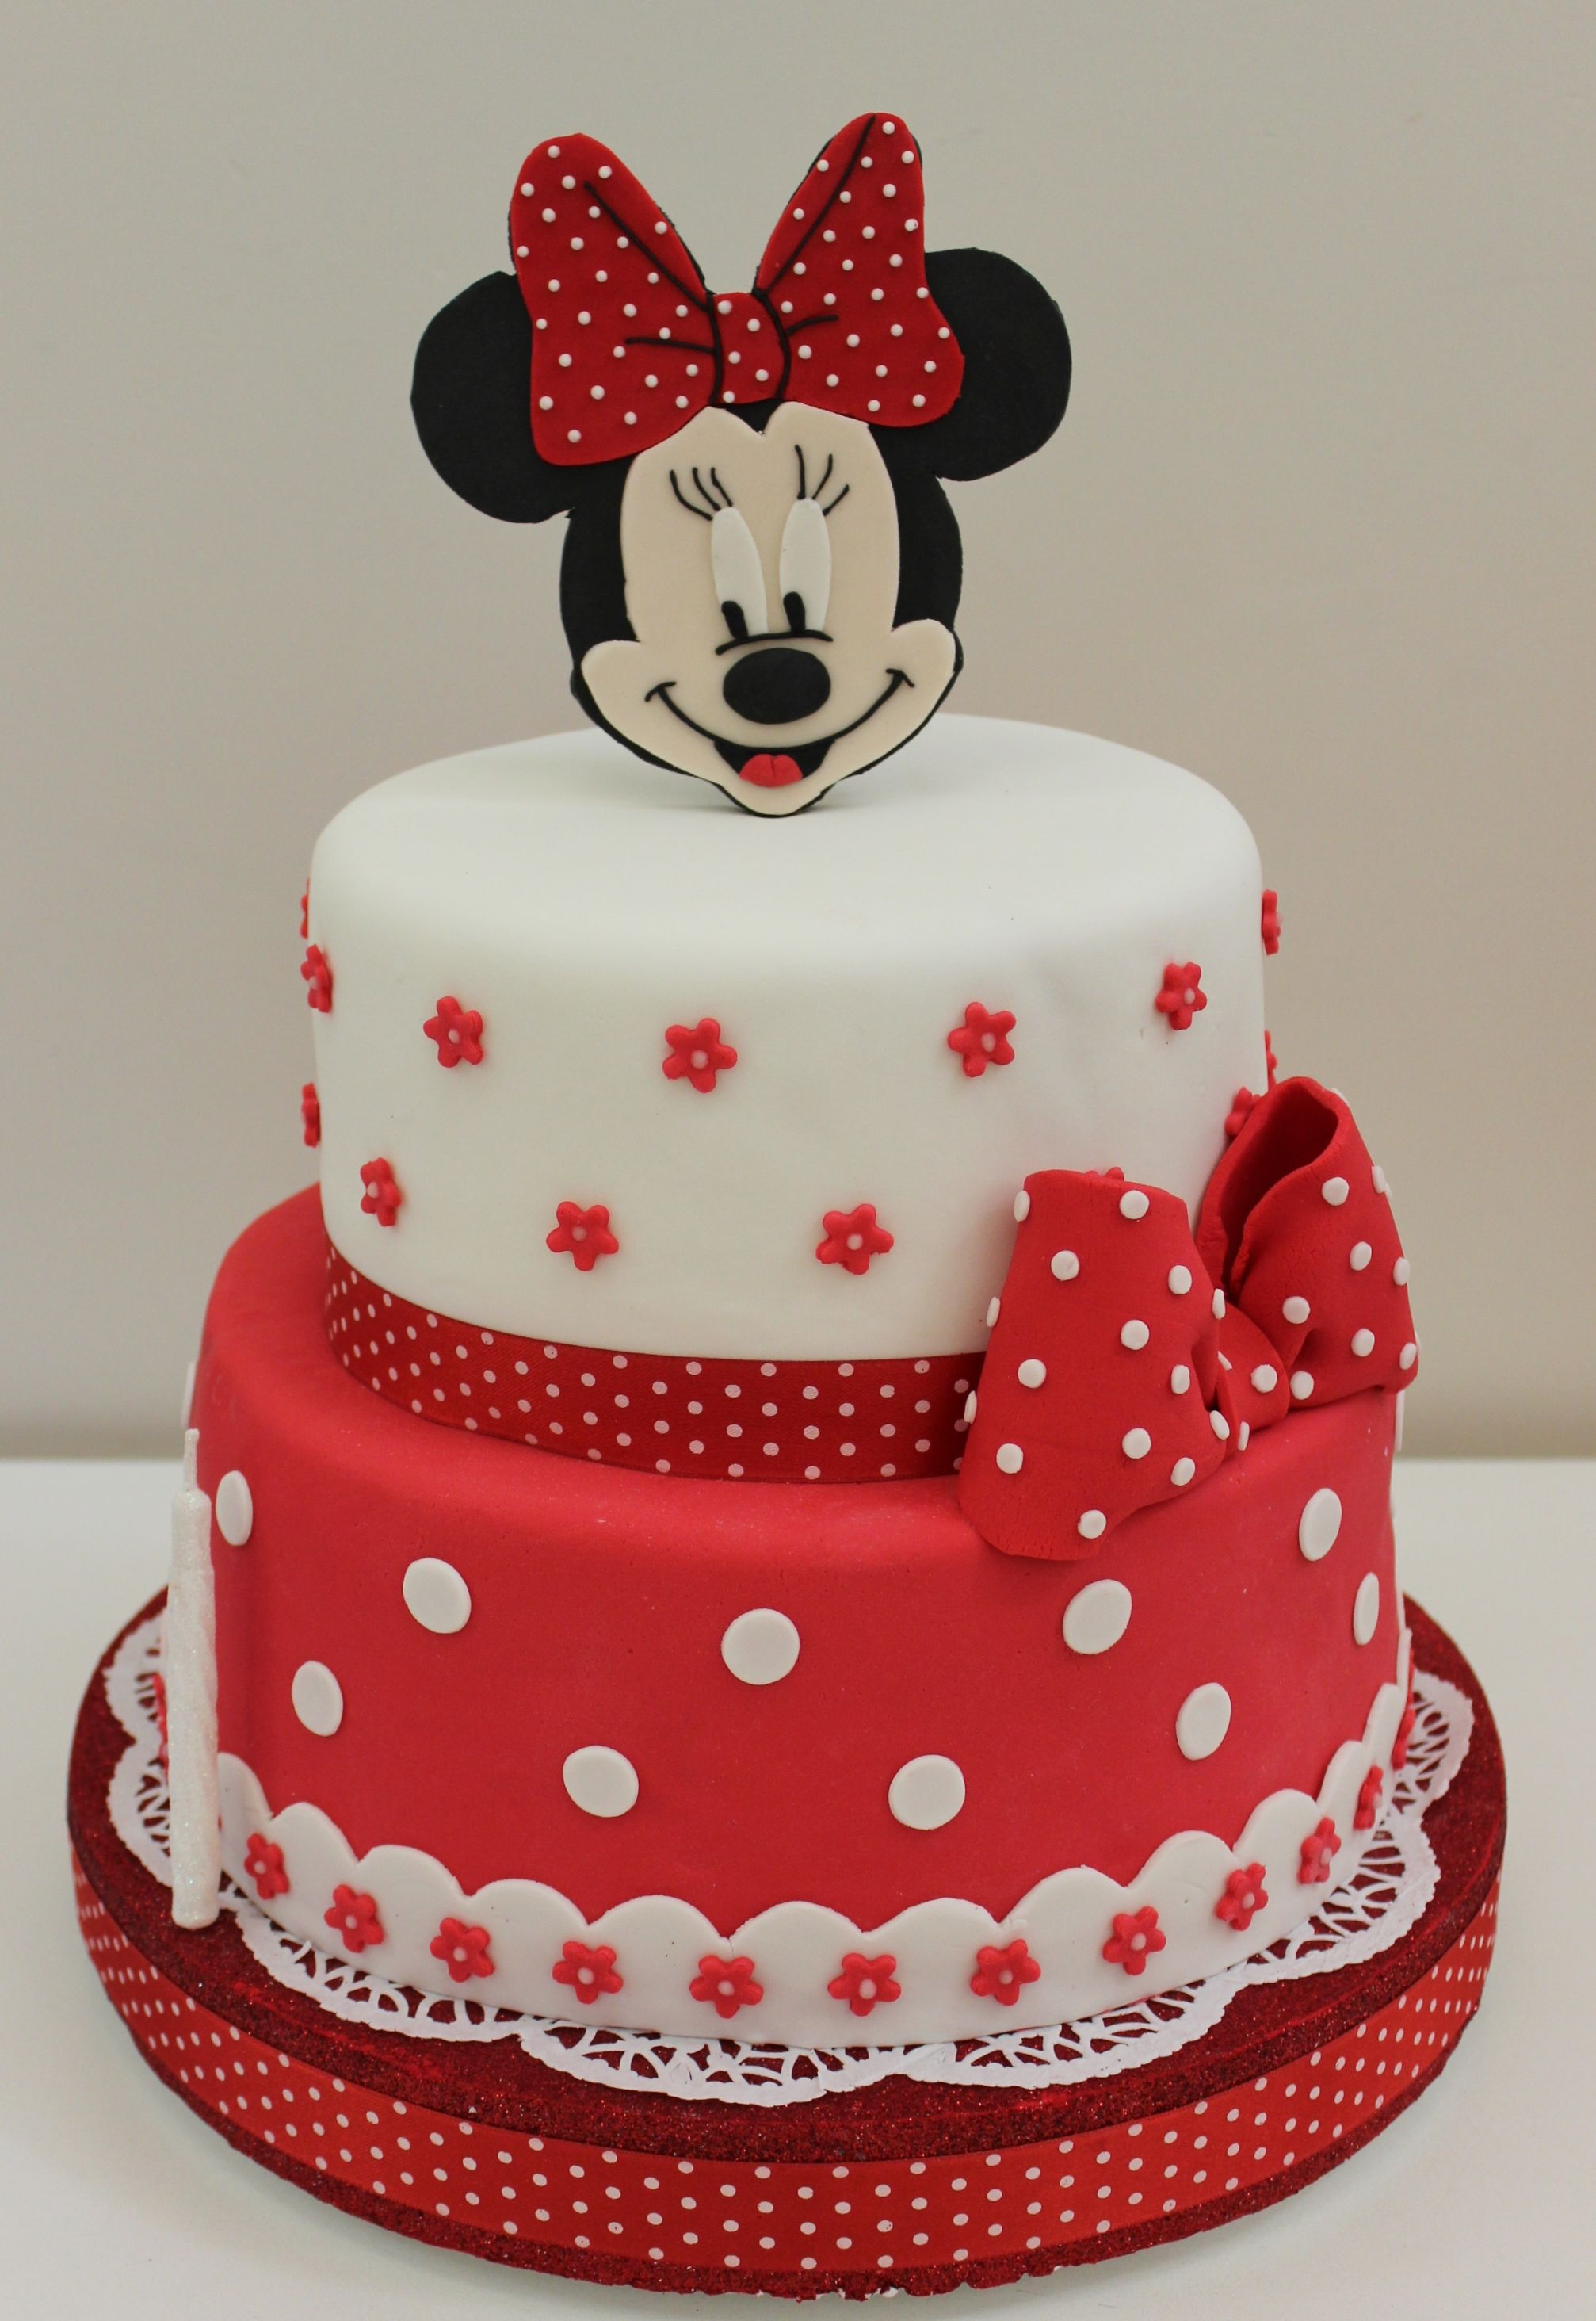 minnie cake by violeta glace minnie mickey cakes cookies cupcakes pinterest torten. Black Bedroom Furniture Sets. Home Design Ideas